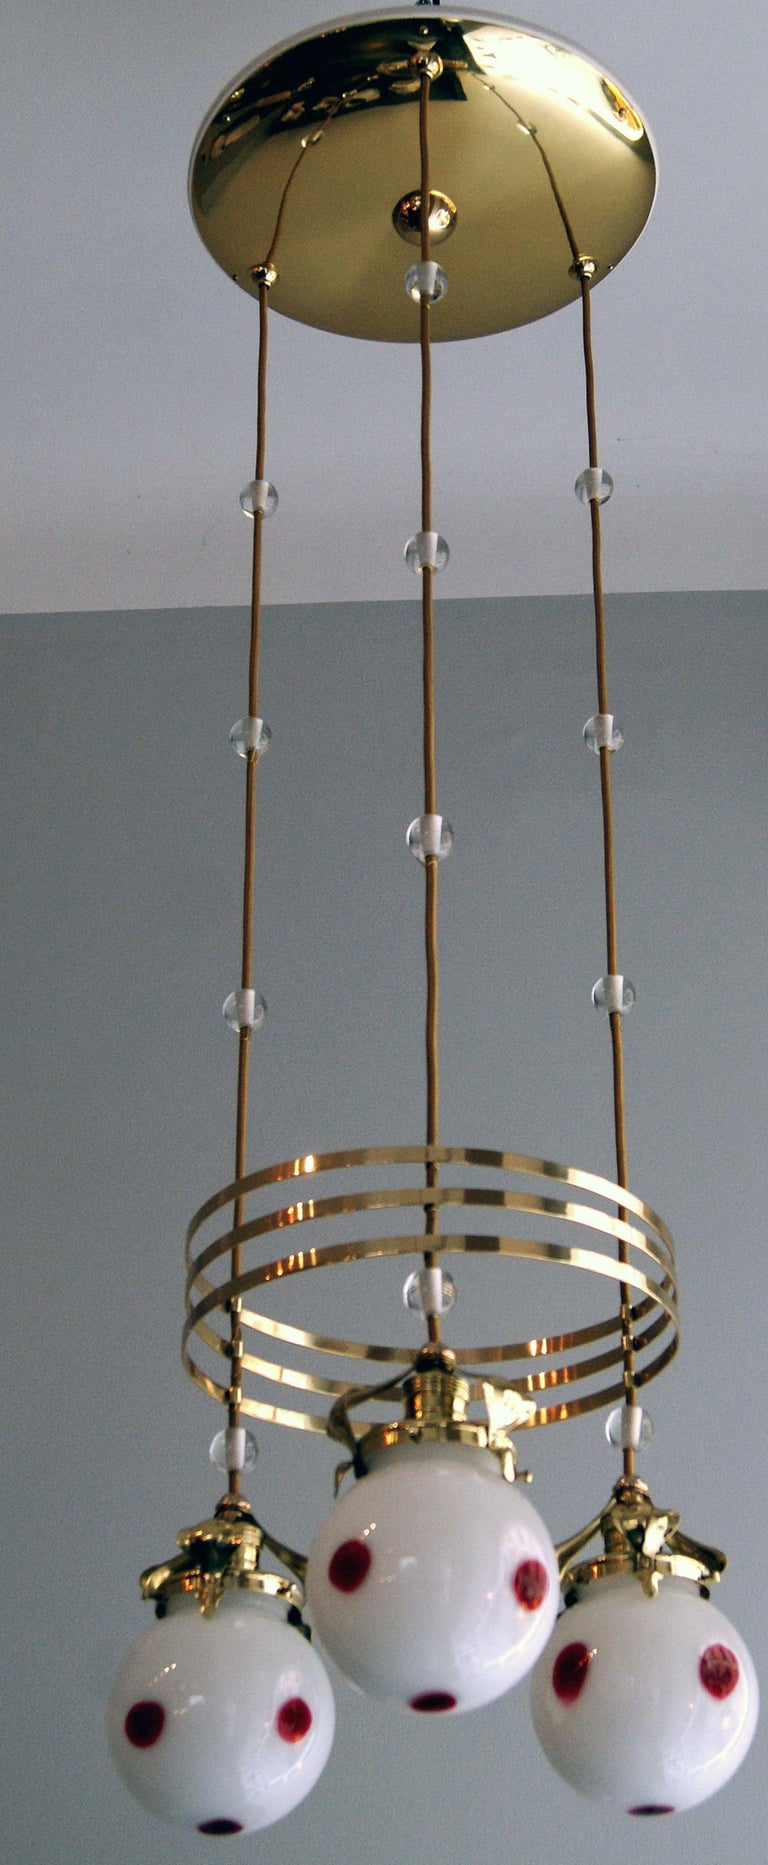 Early 20th Century Art Nouveau Ceiling Lamp Chandelier Design Kolo Moser by Bakalowits, Vienna 1910 For Sale